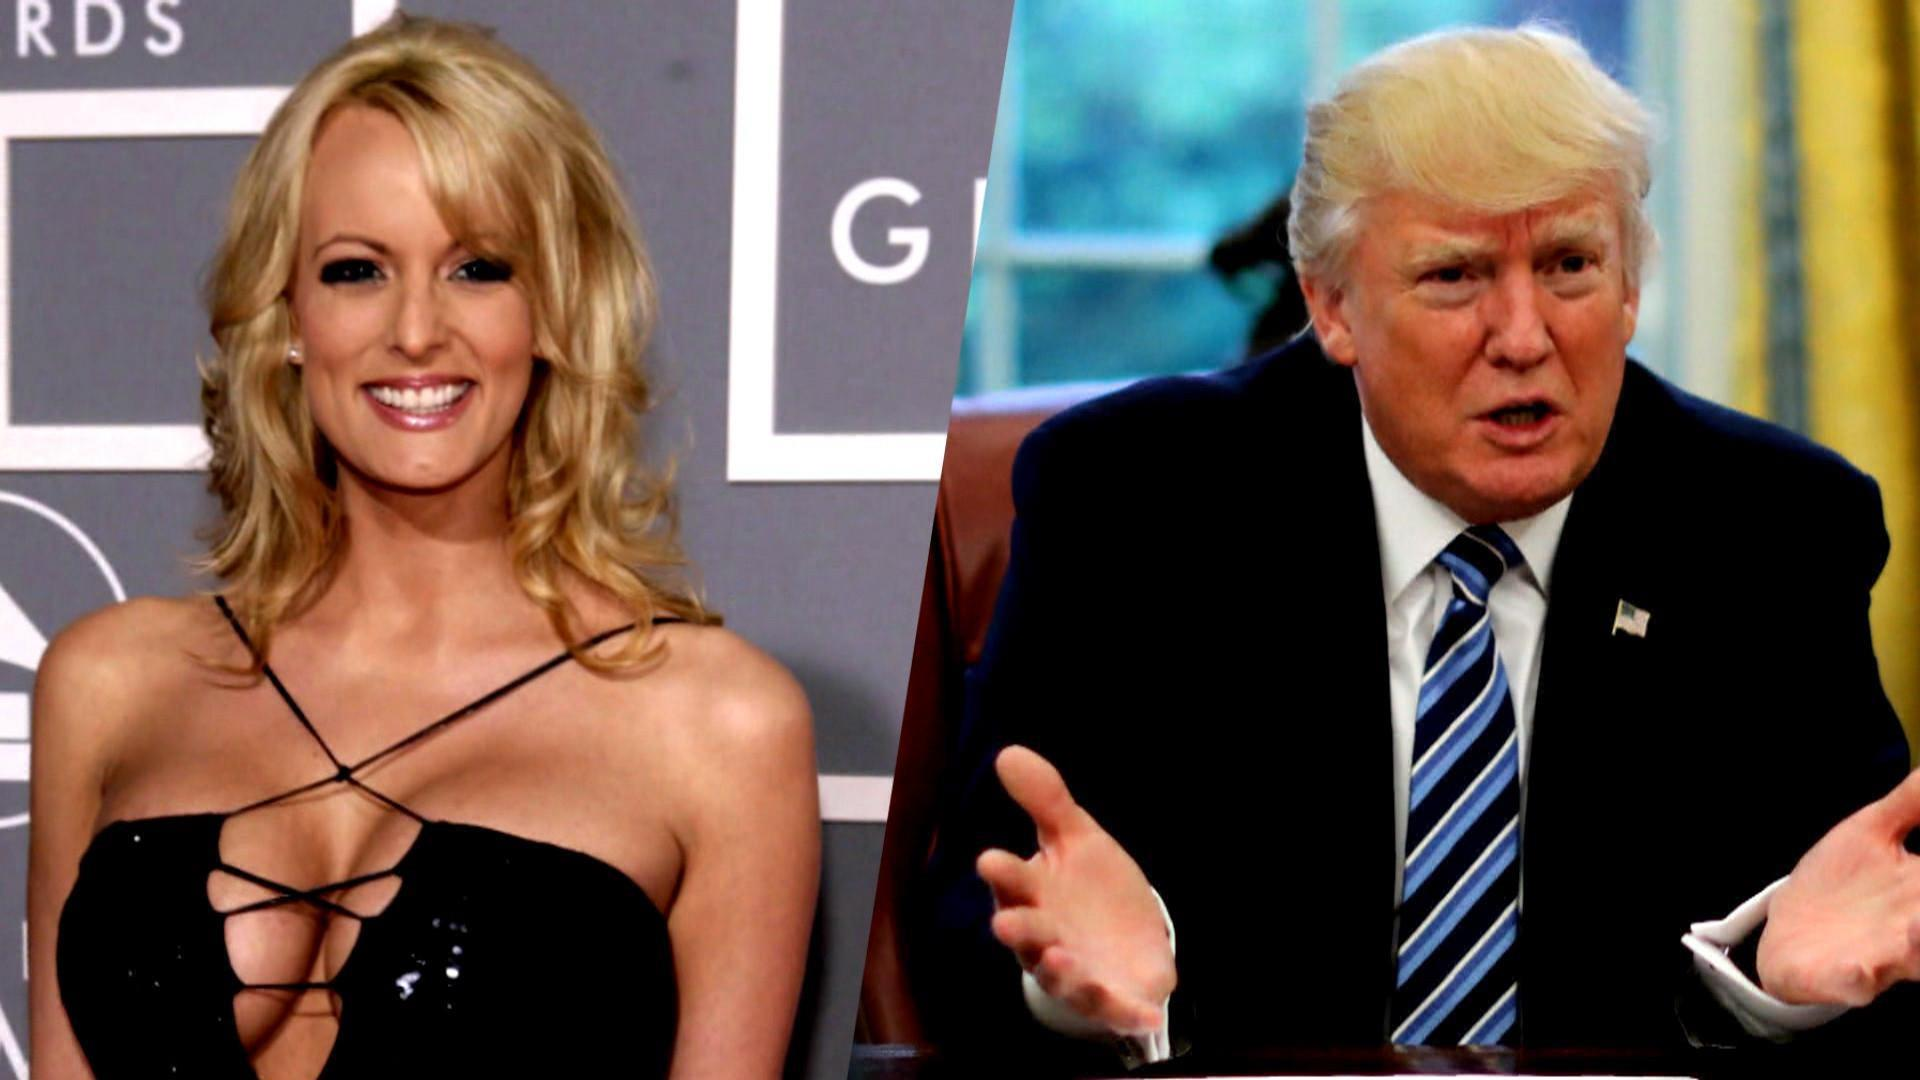 Trump lawyer used private company, pseudonyms to pay porn star stormy daniels